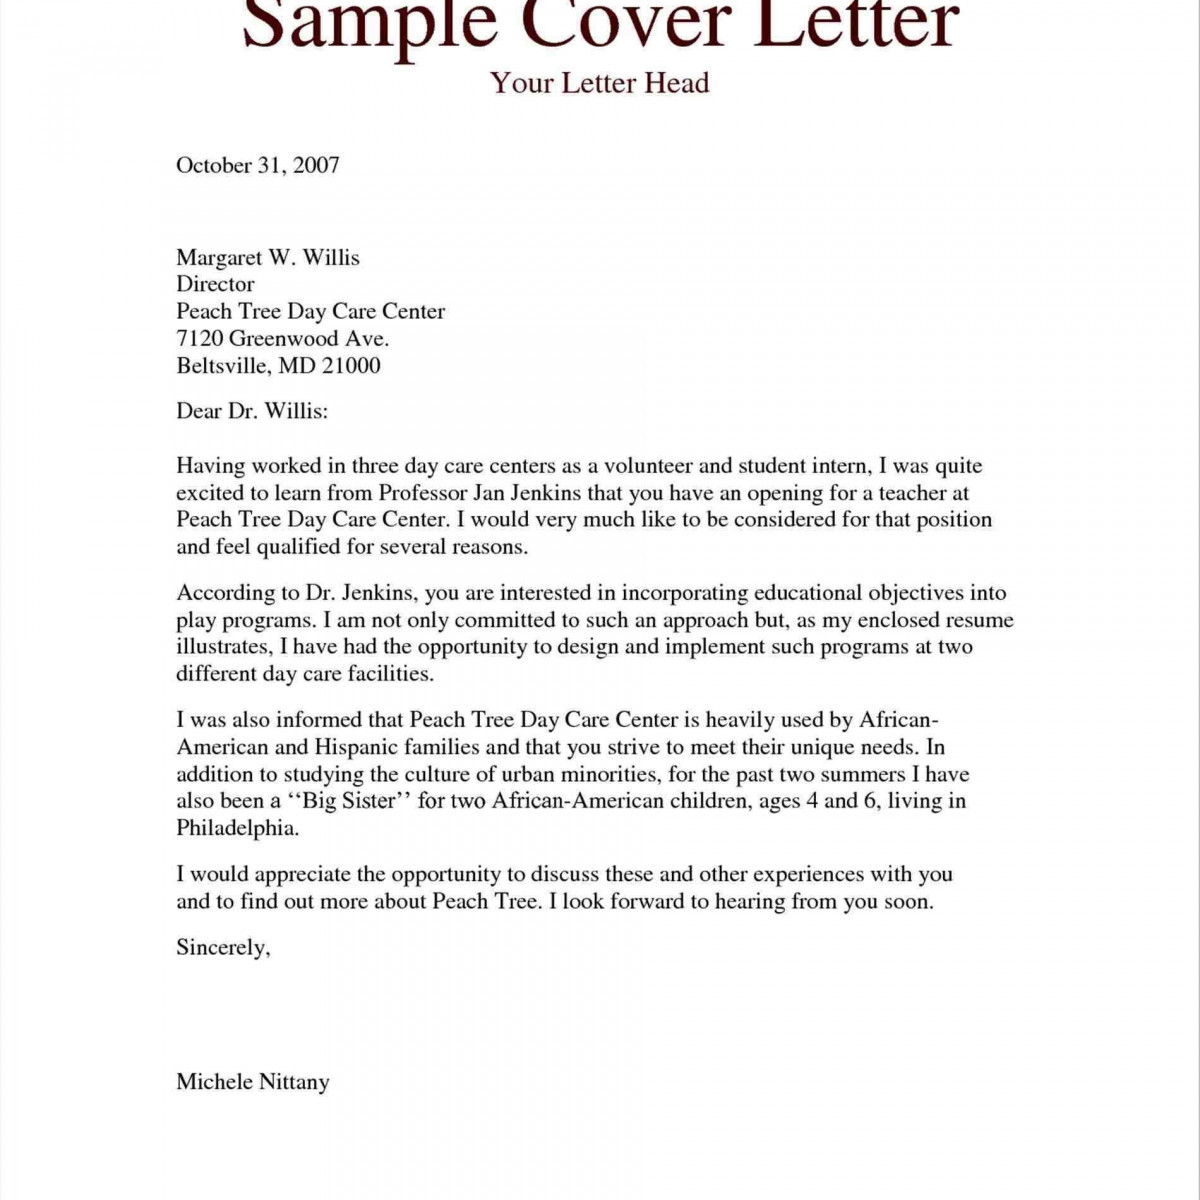 Teacher assistant Resume with No Experience - Teacher assistant Resume with No Experience Awesome Letter